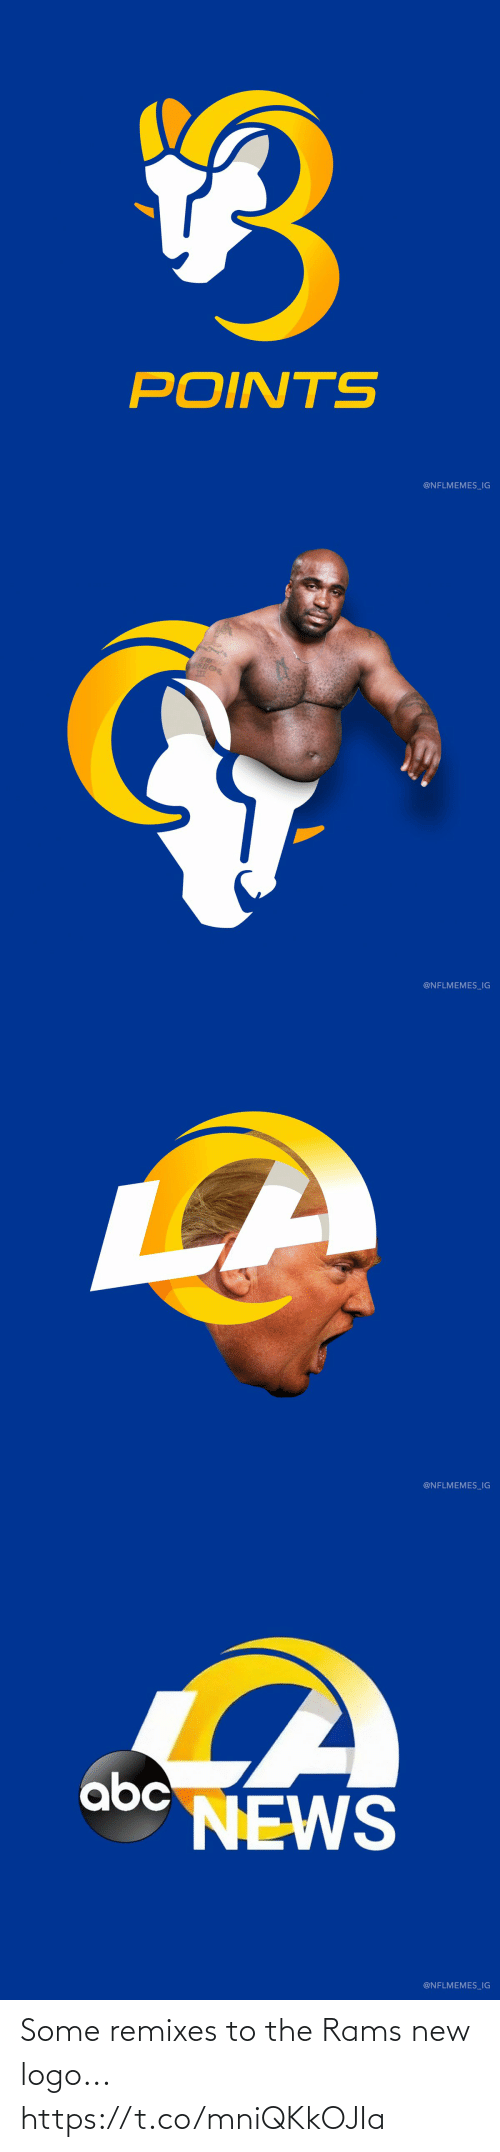 Some: Some remixes to the Rams new logo... https://t.co/mniQKkOJIa